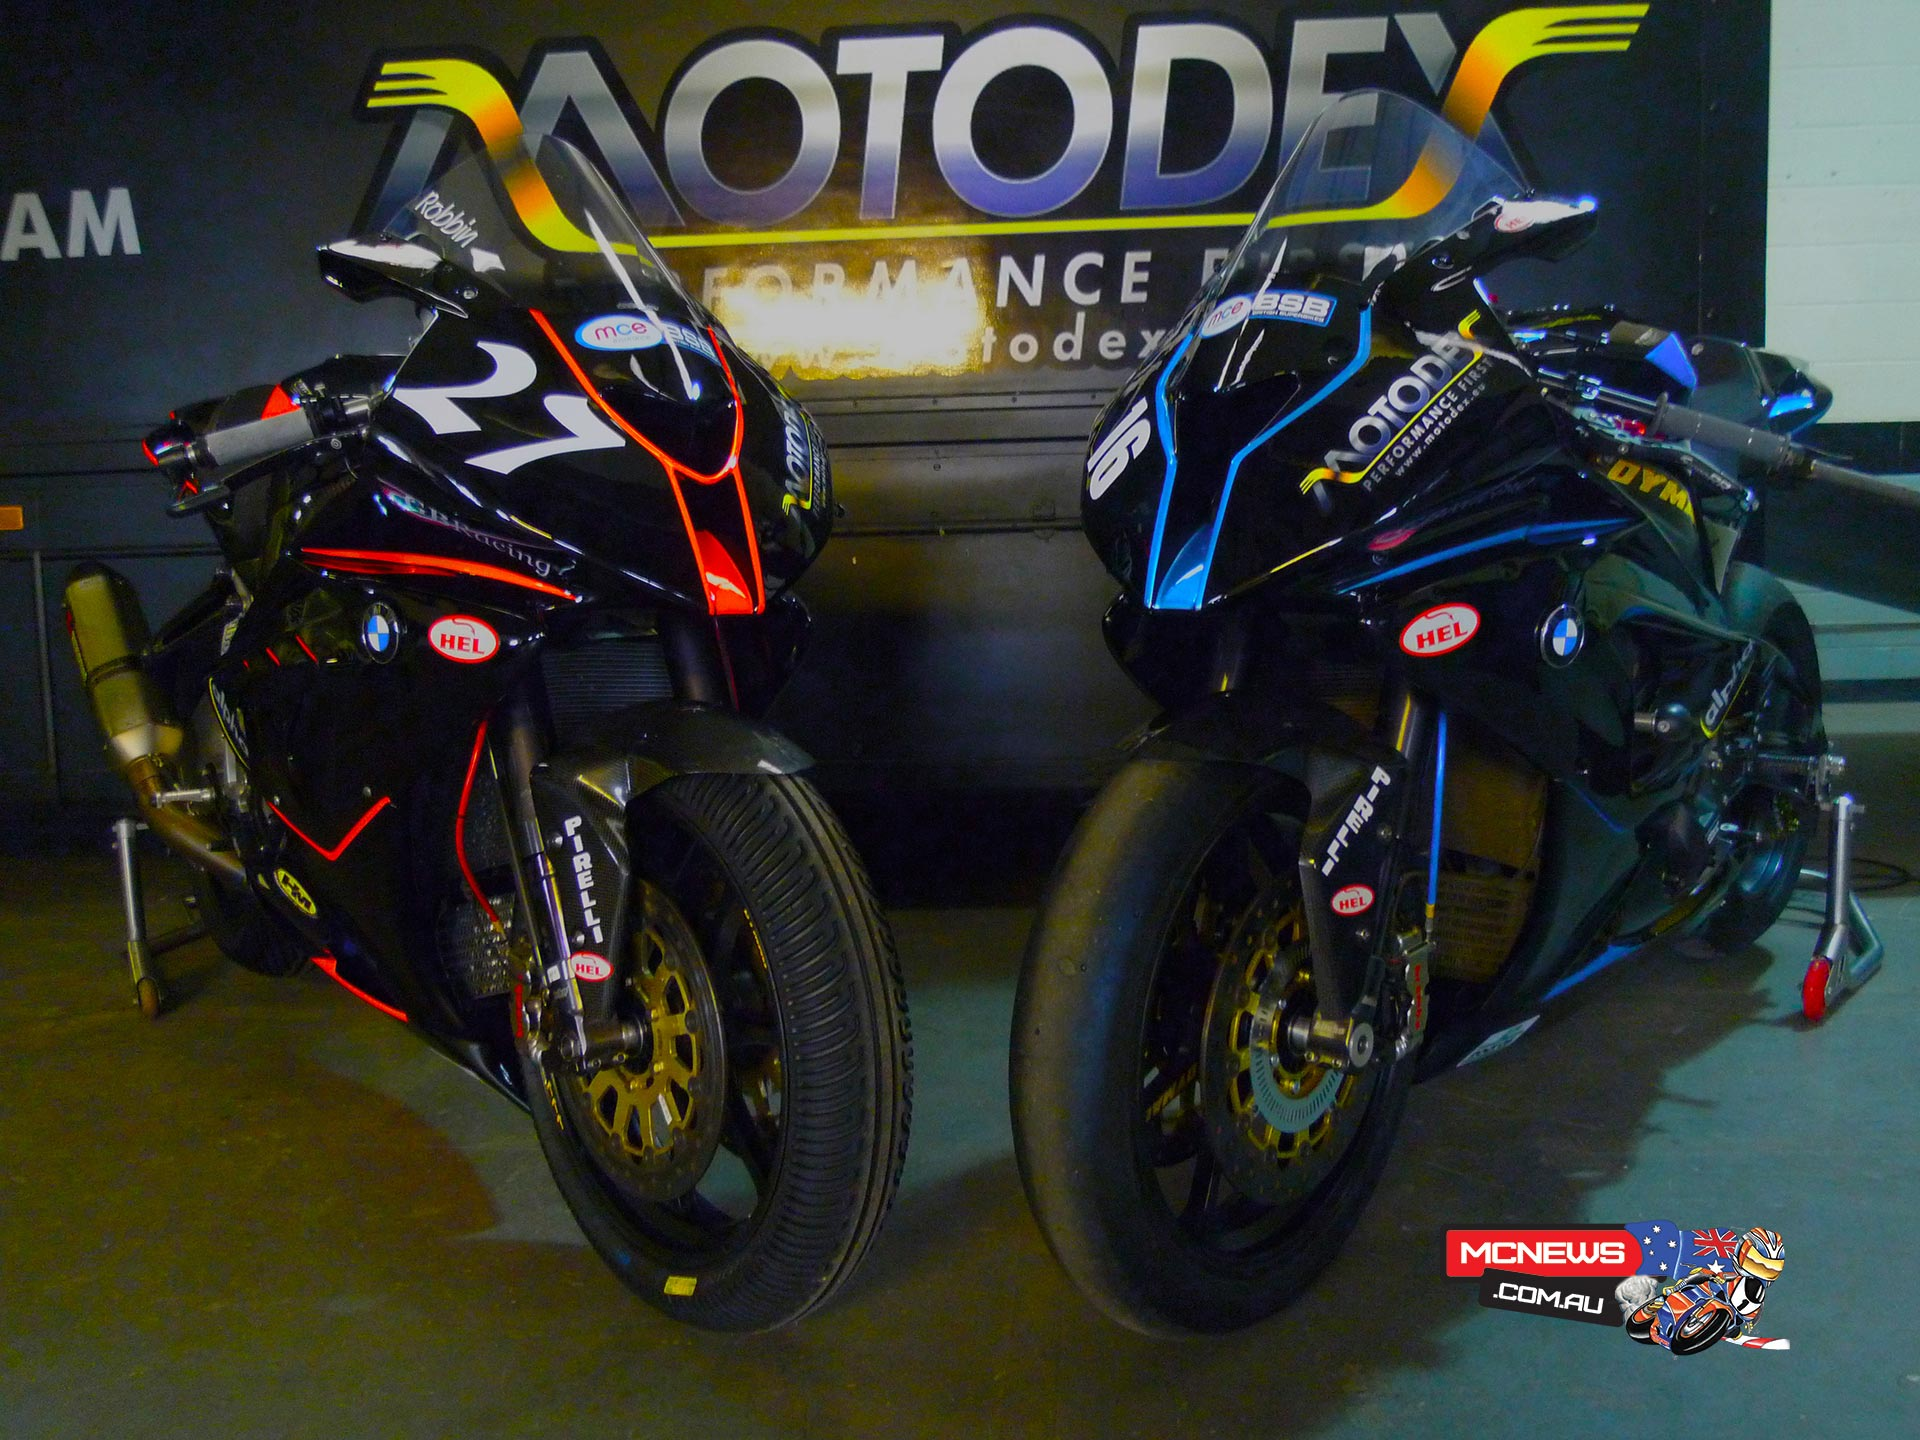 MotoDex Performance First BMW S 1000 RR Superbike